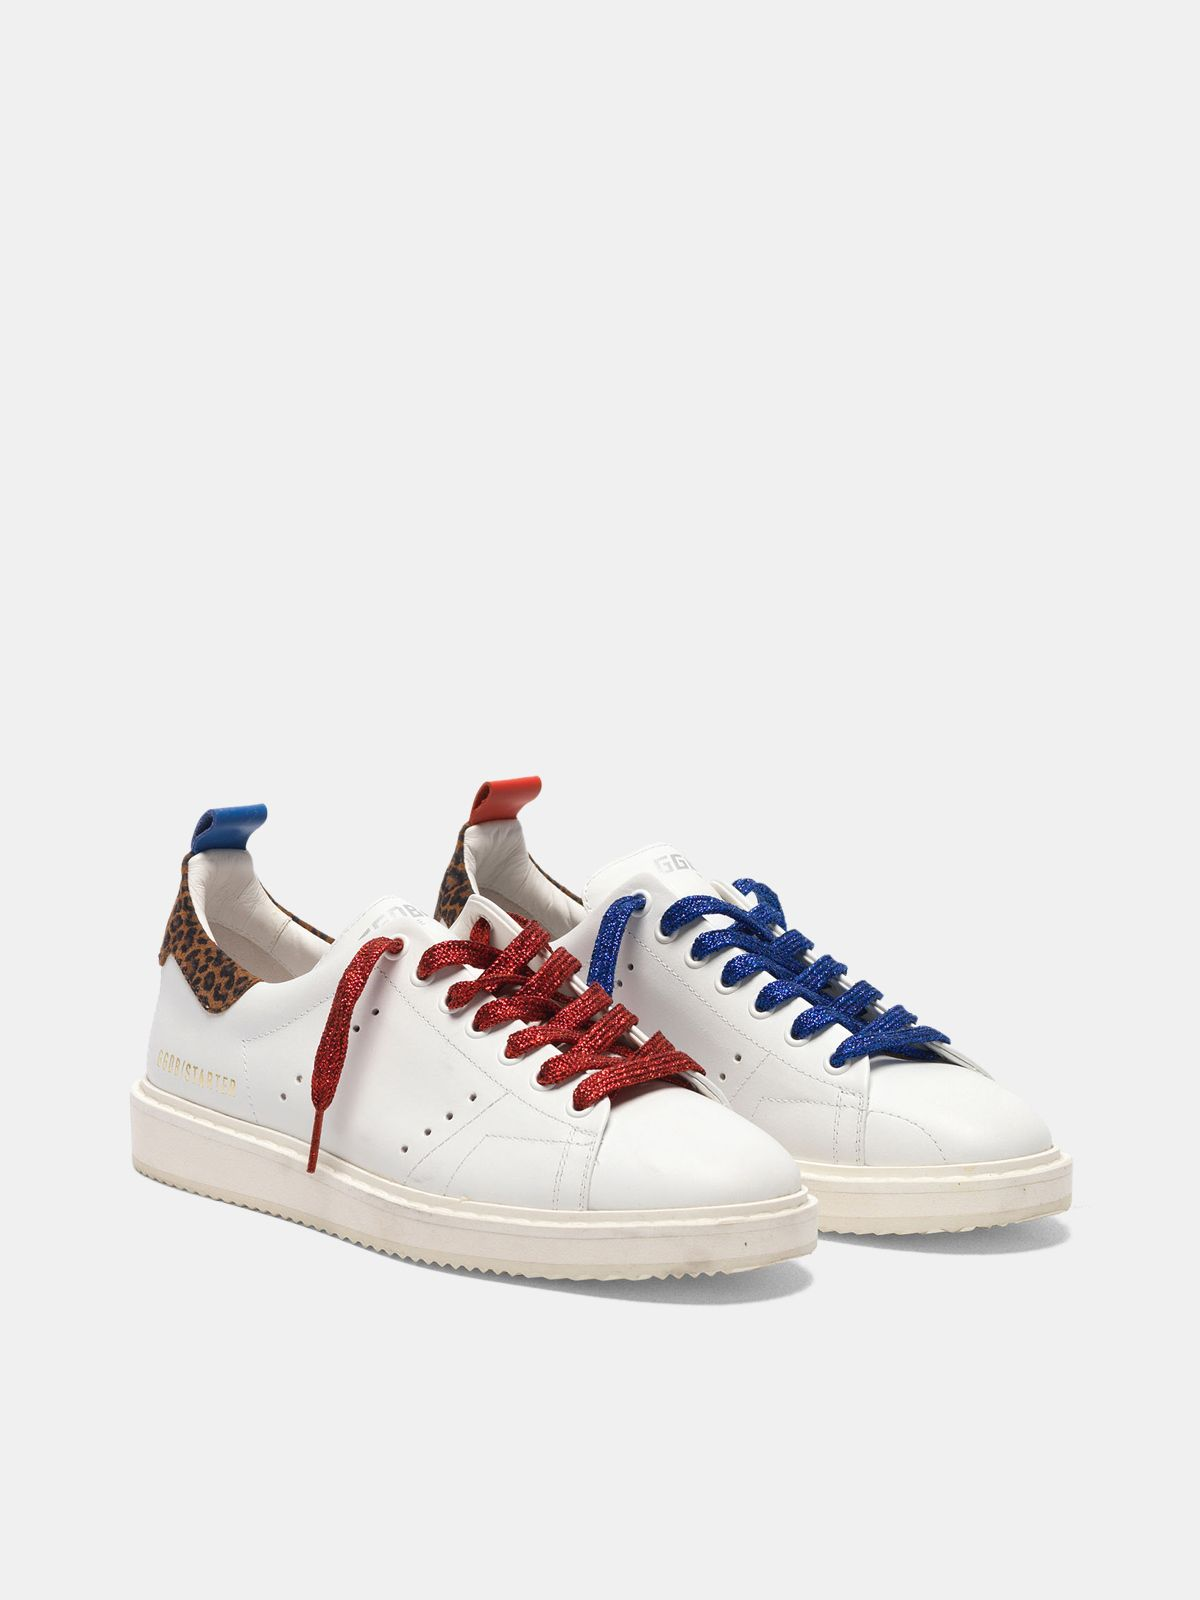 Golden Goose - Starter sneakers in leather with leopard-print heel tab in